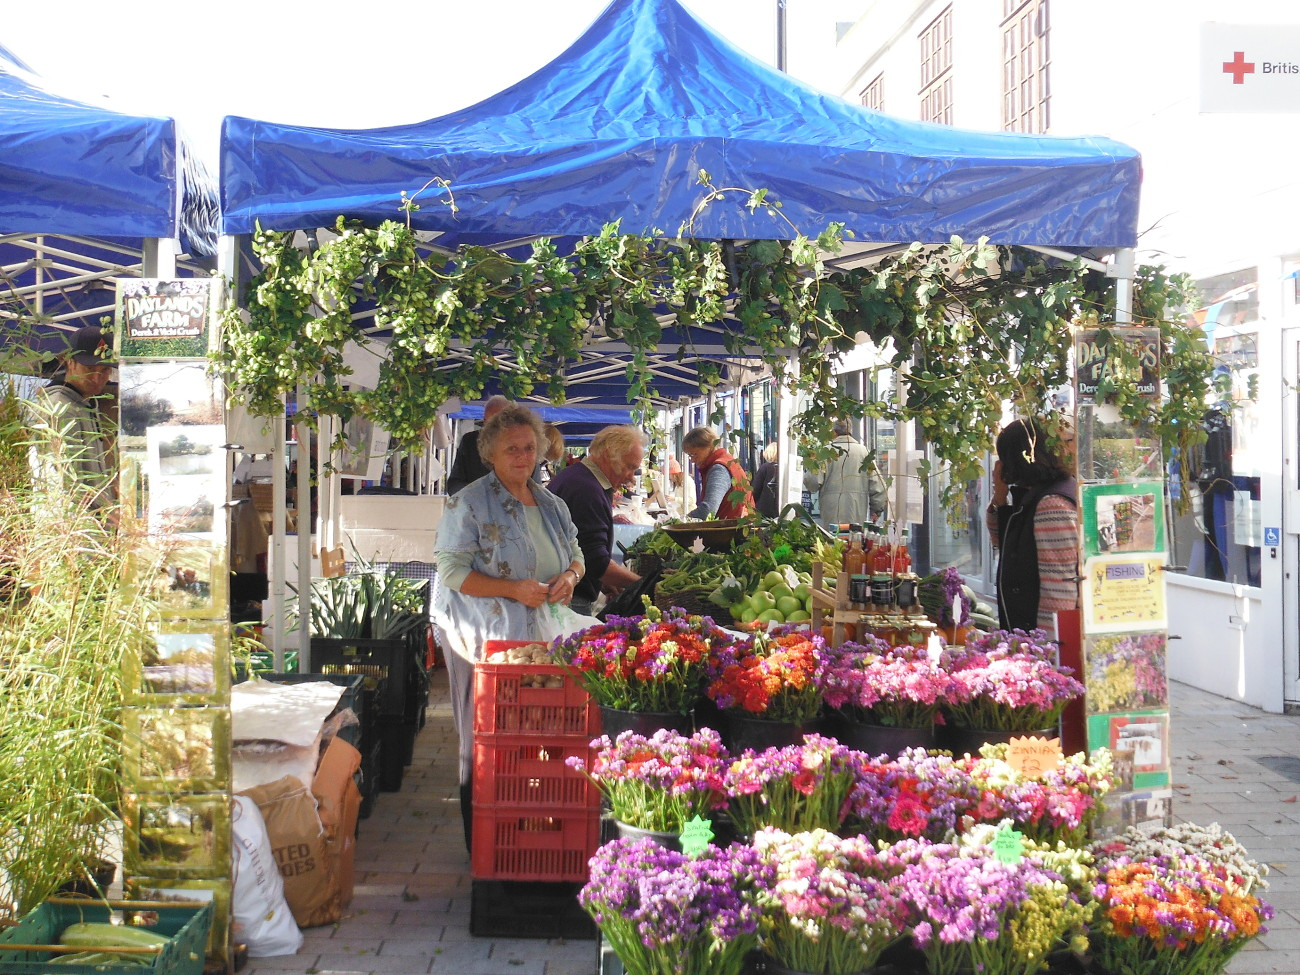 Vicki selling flowers on the stall at farmers' market